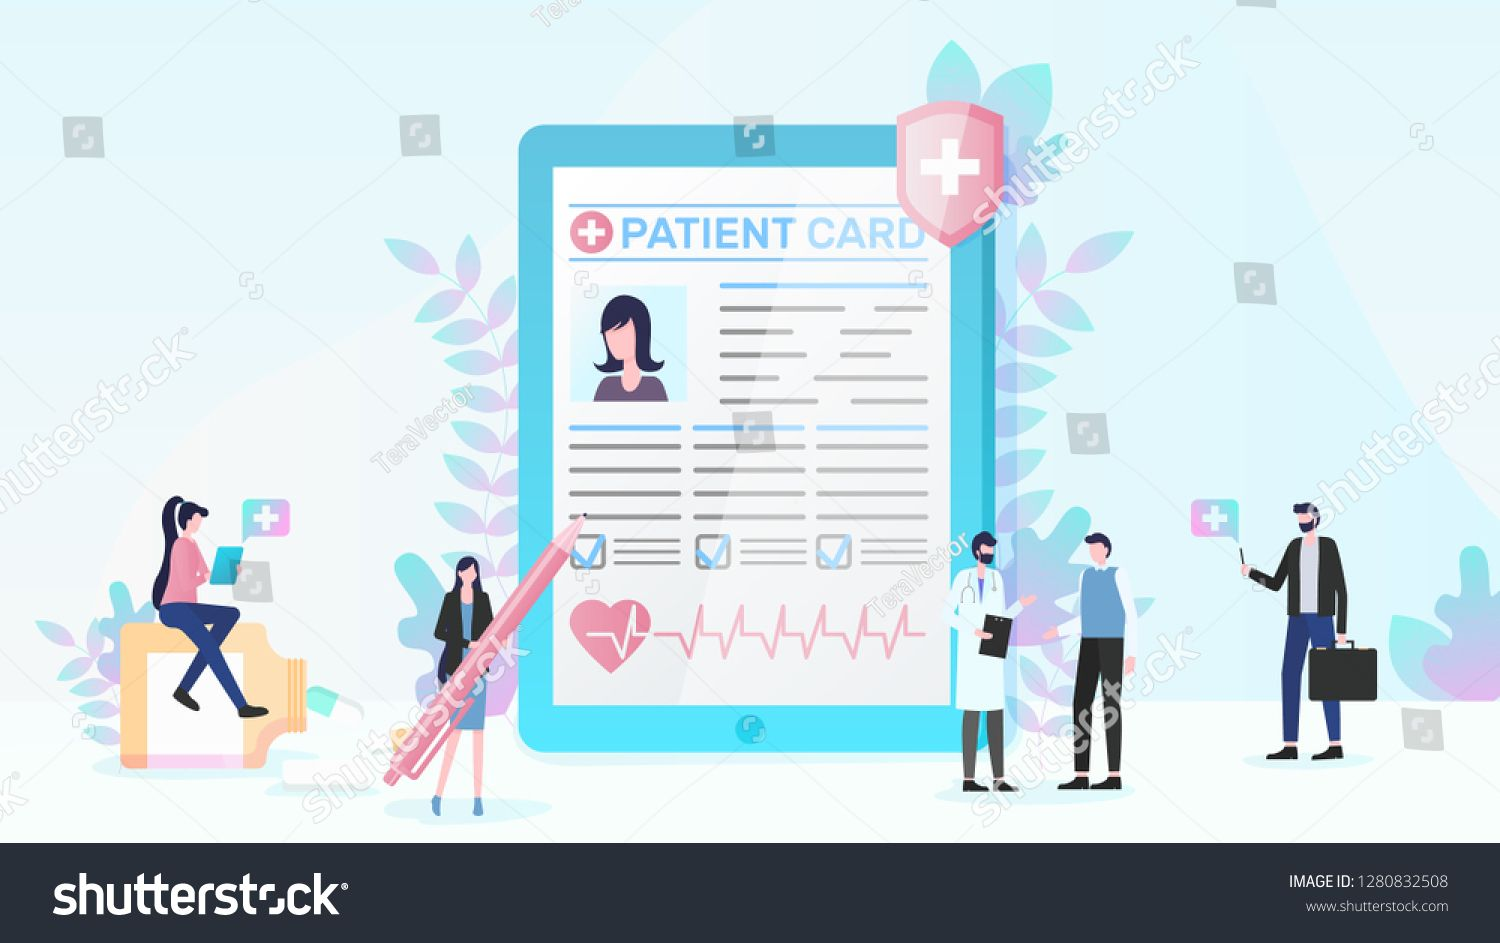 Healthcare flat vector concept with people using online